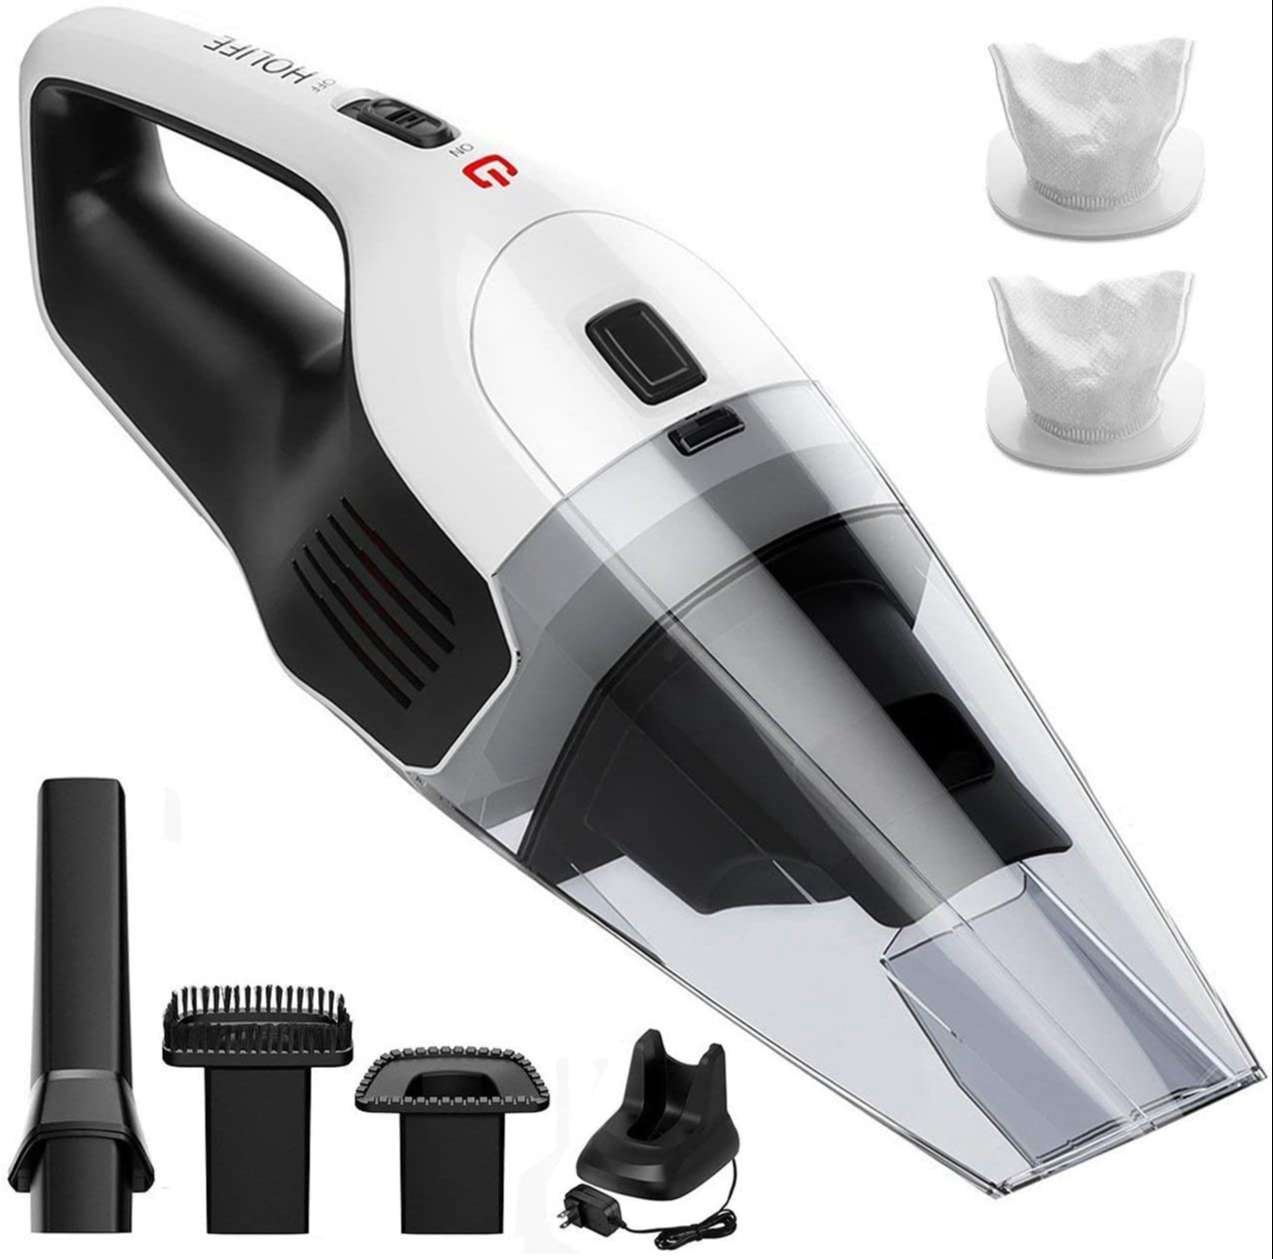 Best Vacuum Cleaner for Stairs